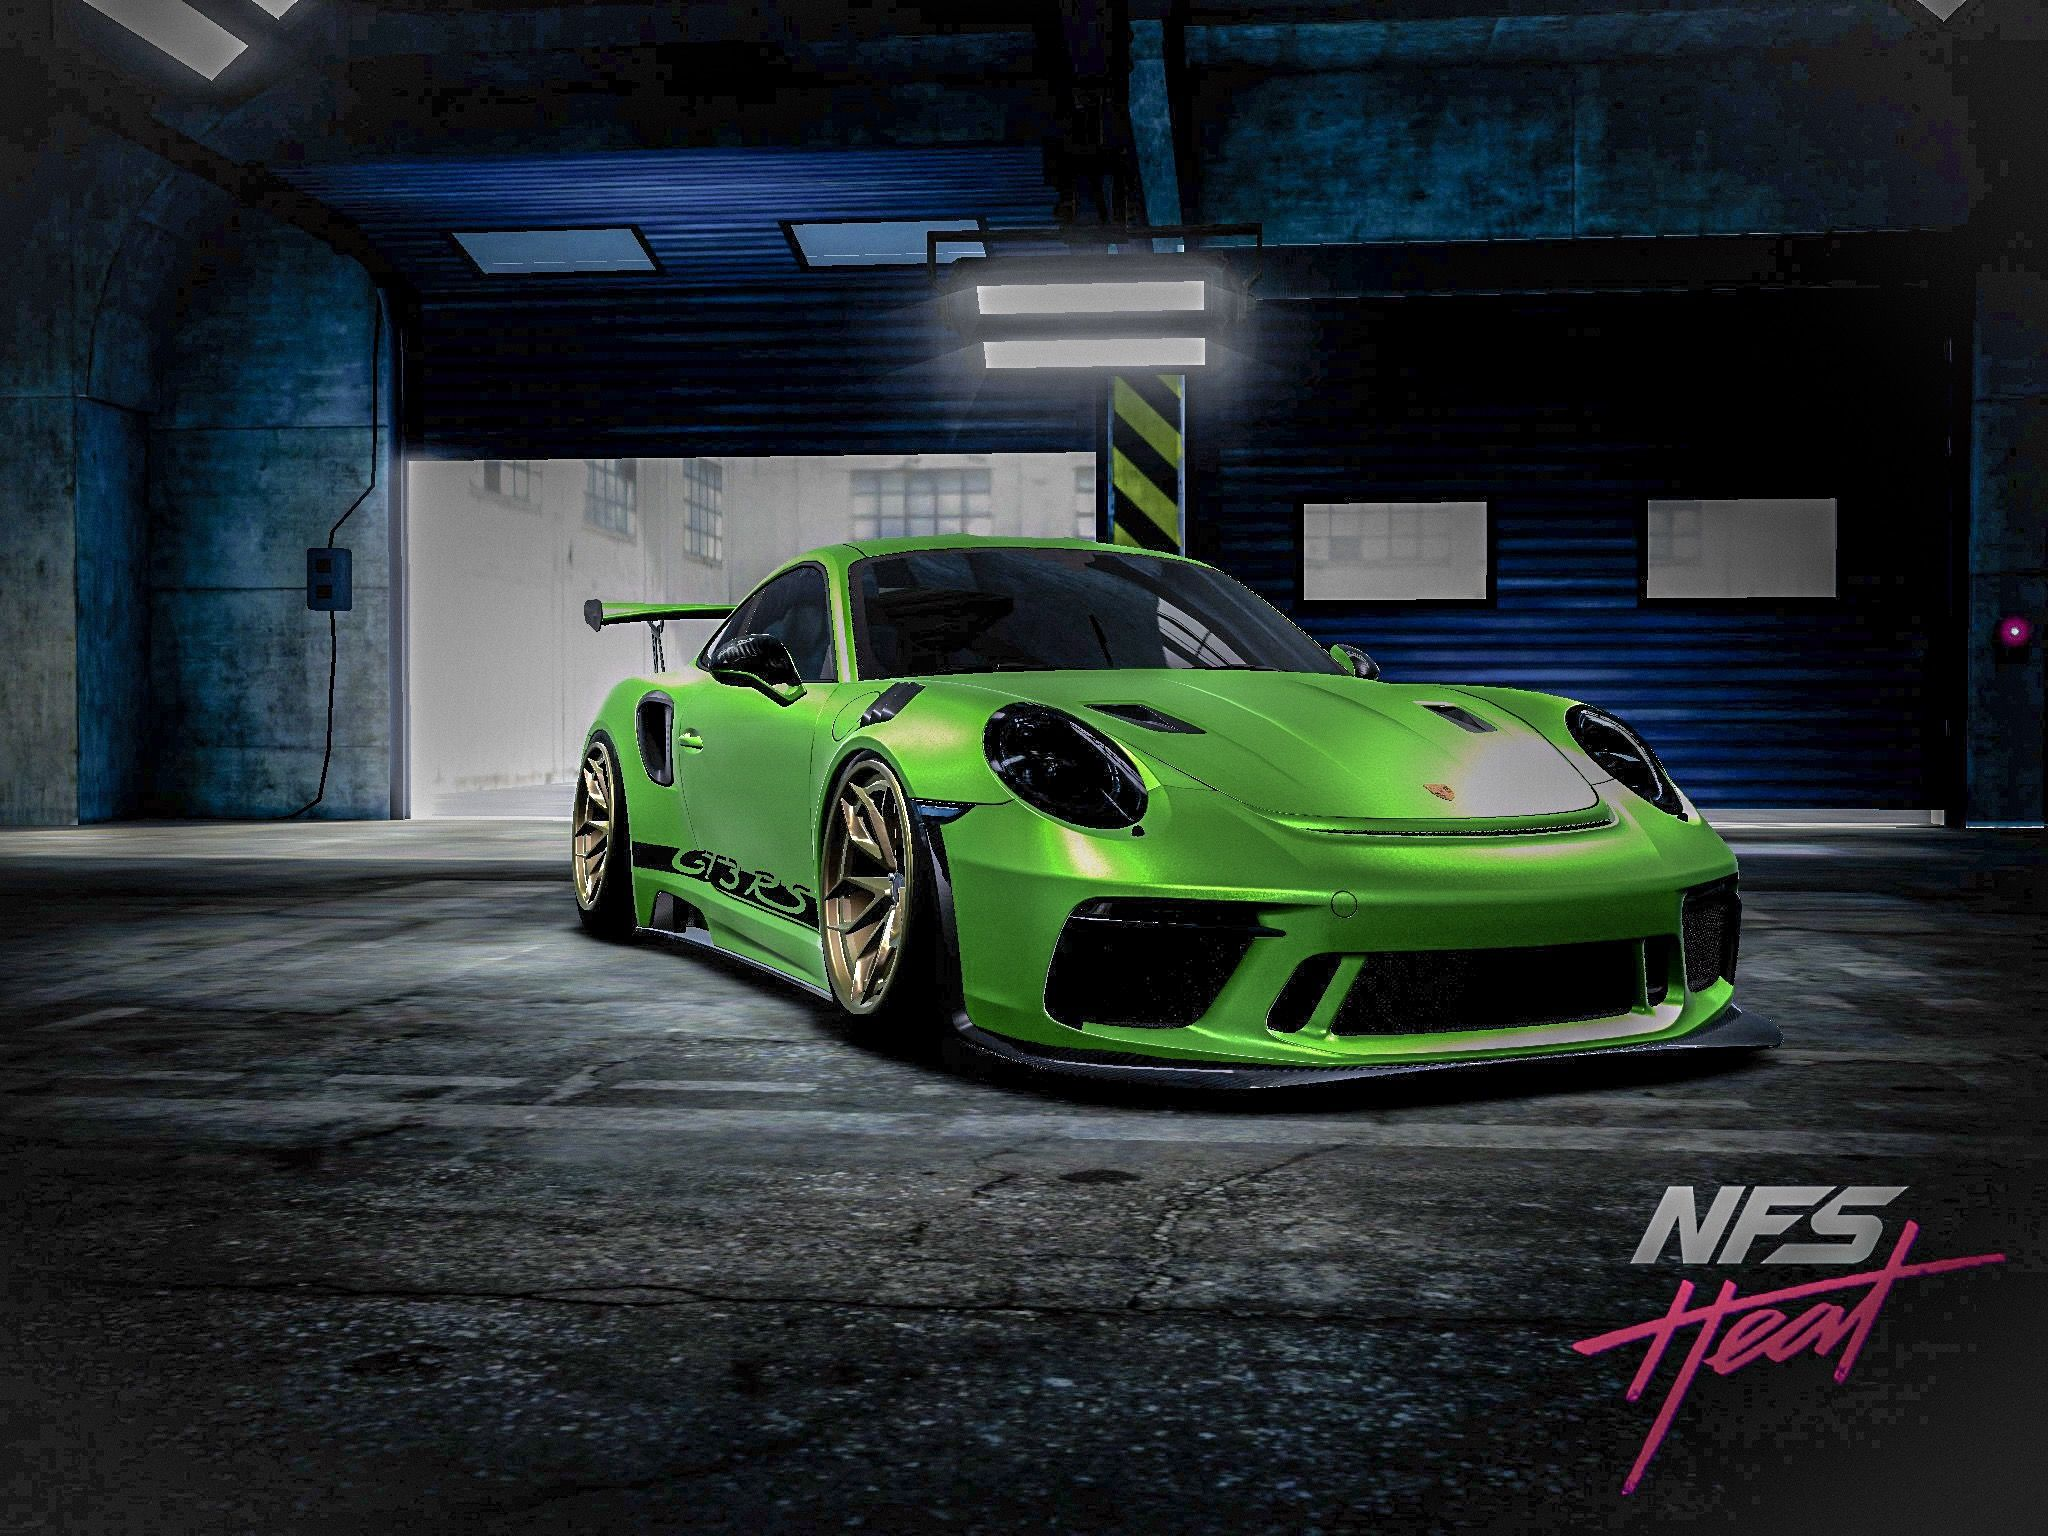 The Photo Made By Seadfil In Nfs Heat Studio Mobil Modifikasi Mobil